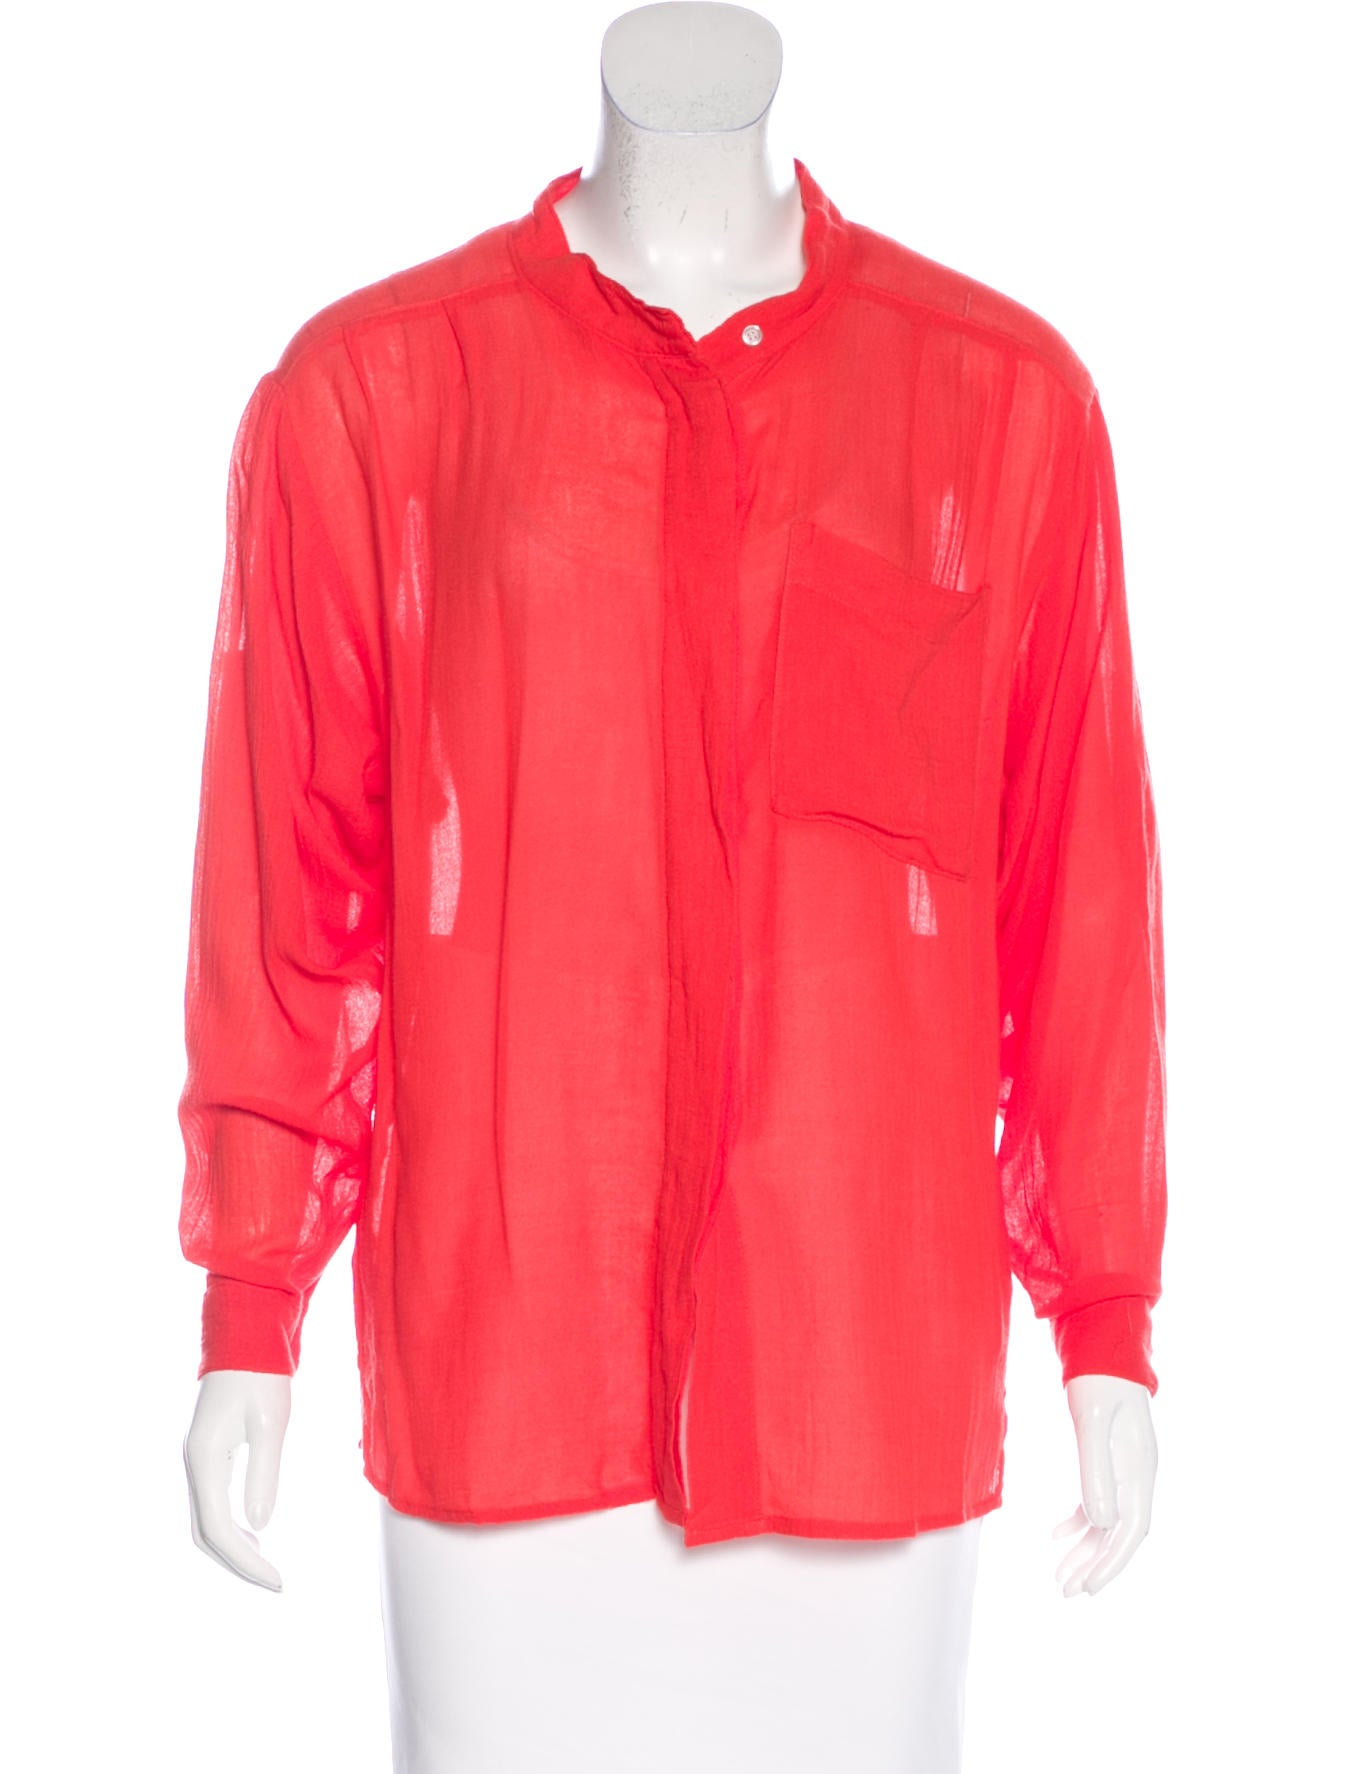 Nsf bamboo button up top w tags clothing wn020268 for Bamboo button down shirts